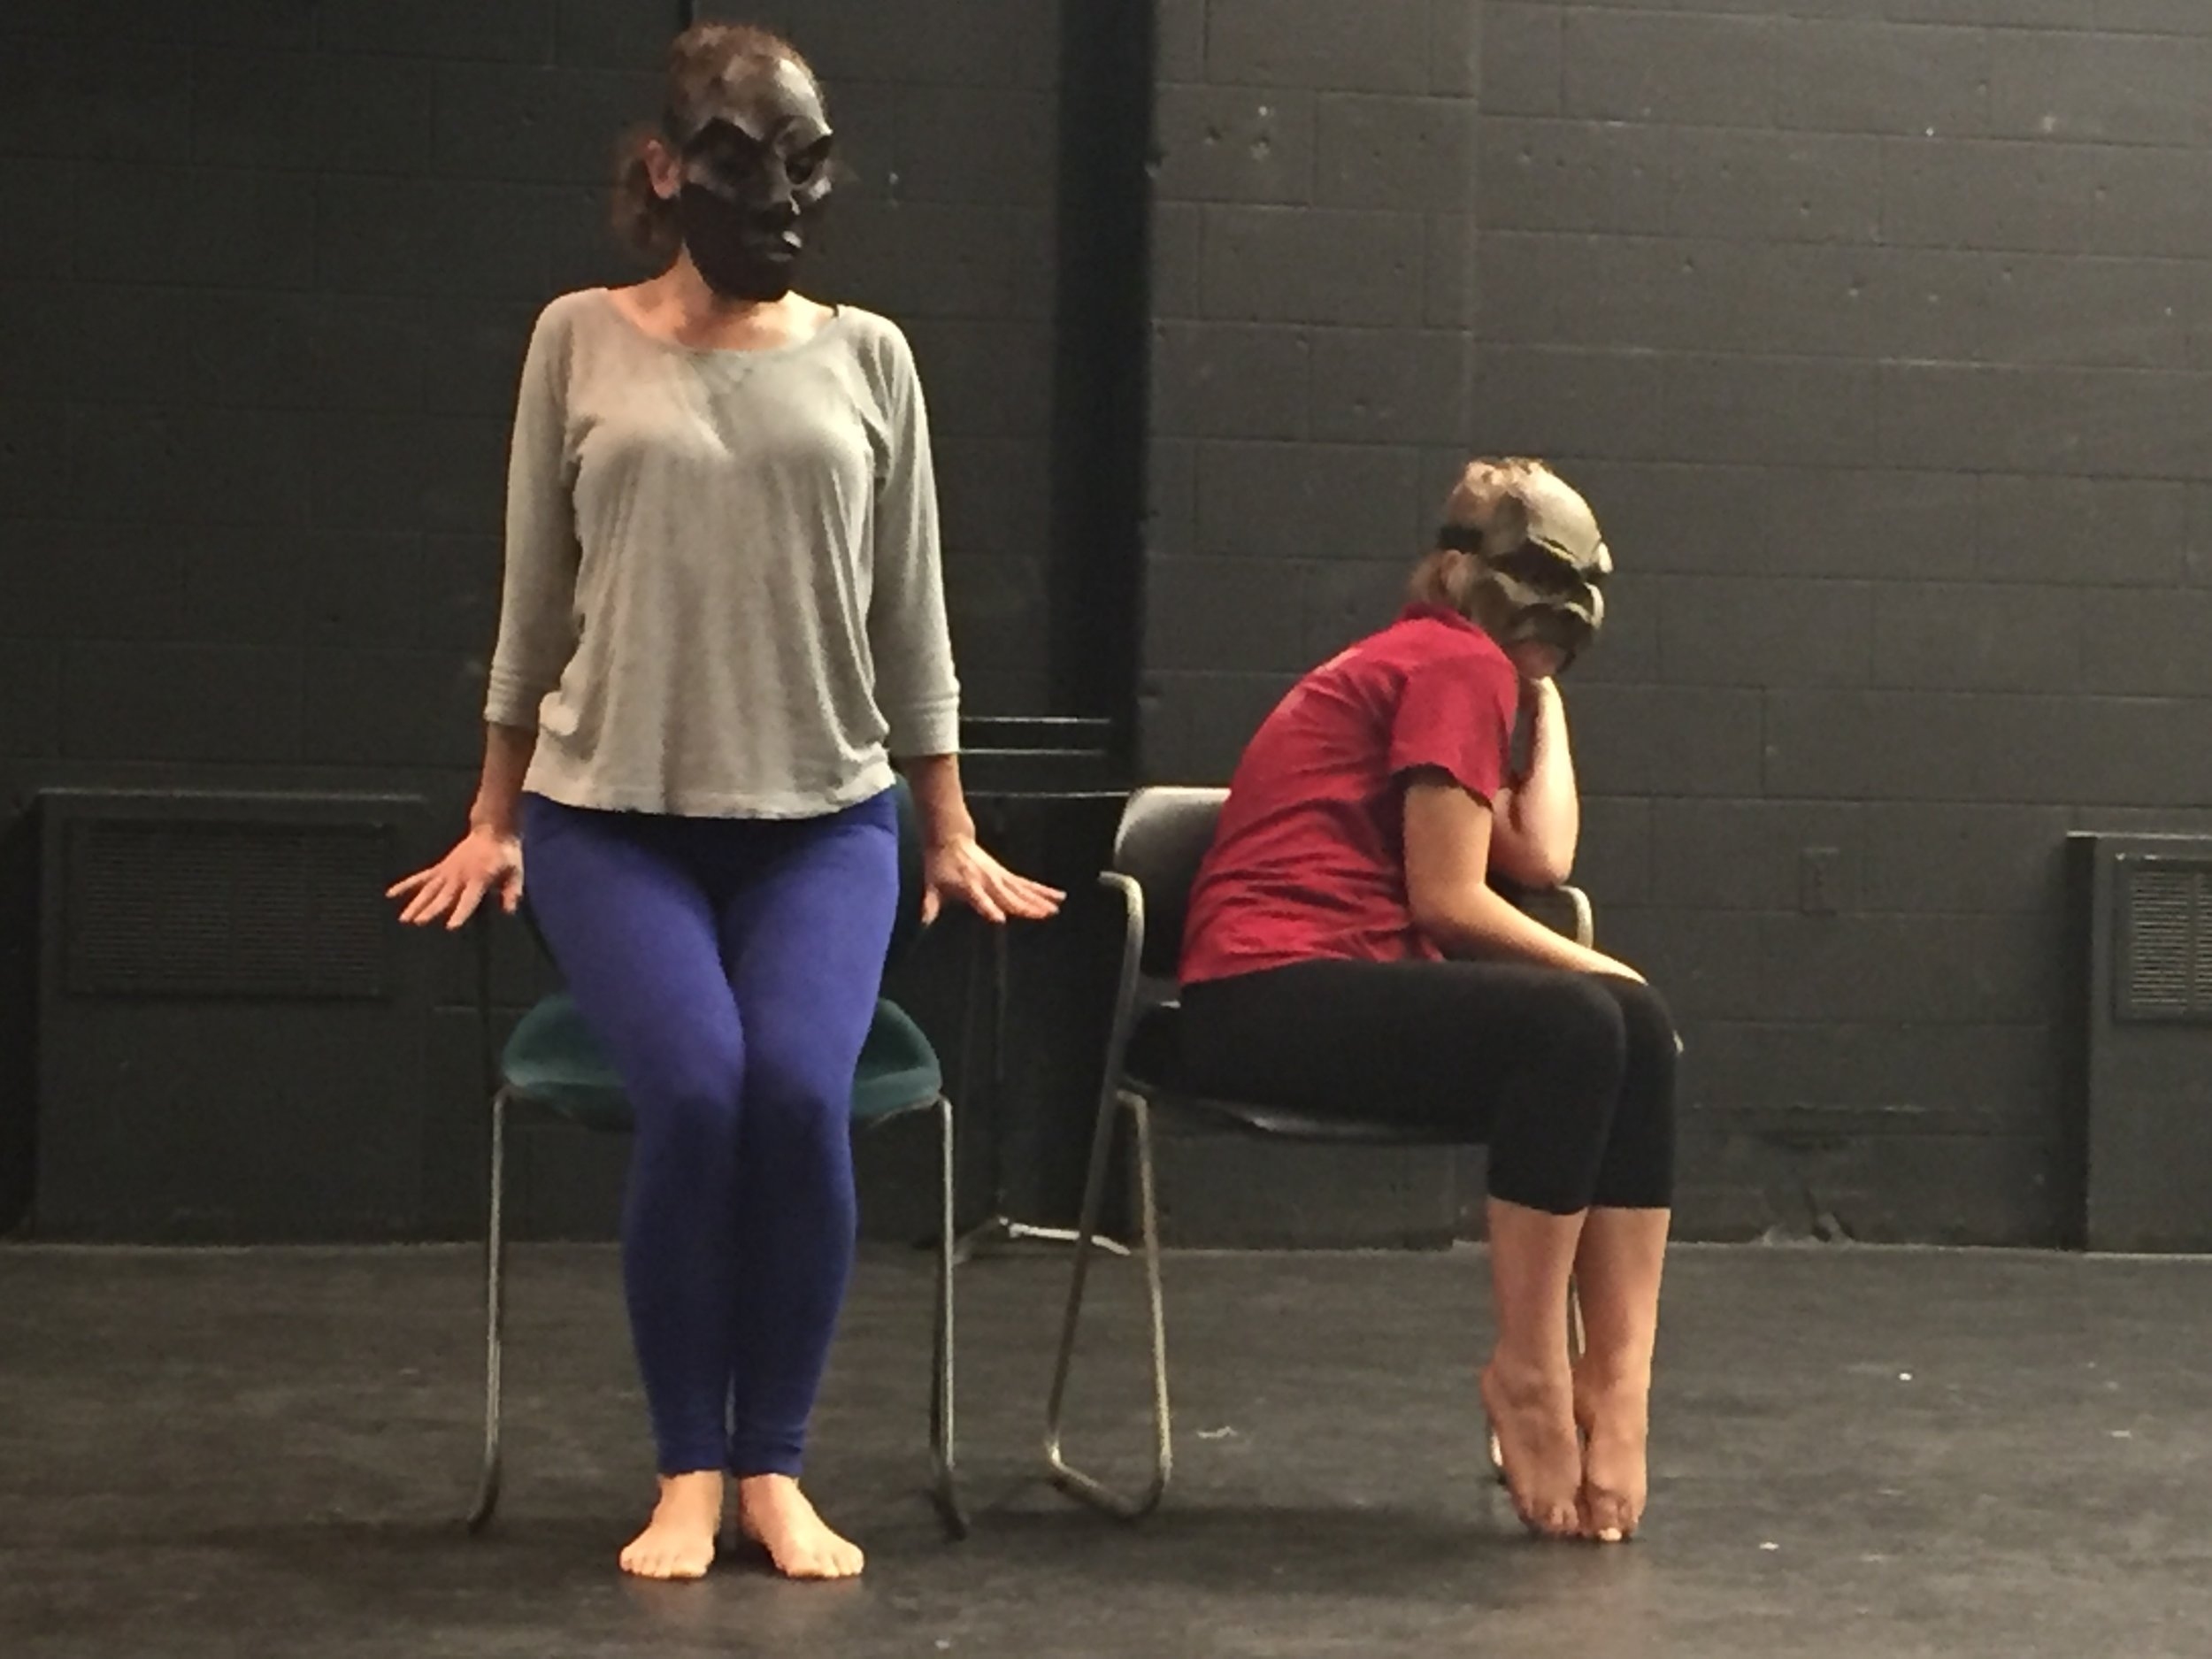 Shelby Lewis (left) and Izzy Chilian (right) working on mask and countermask.